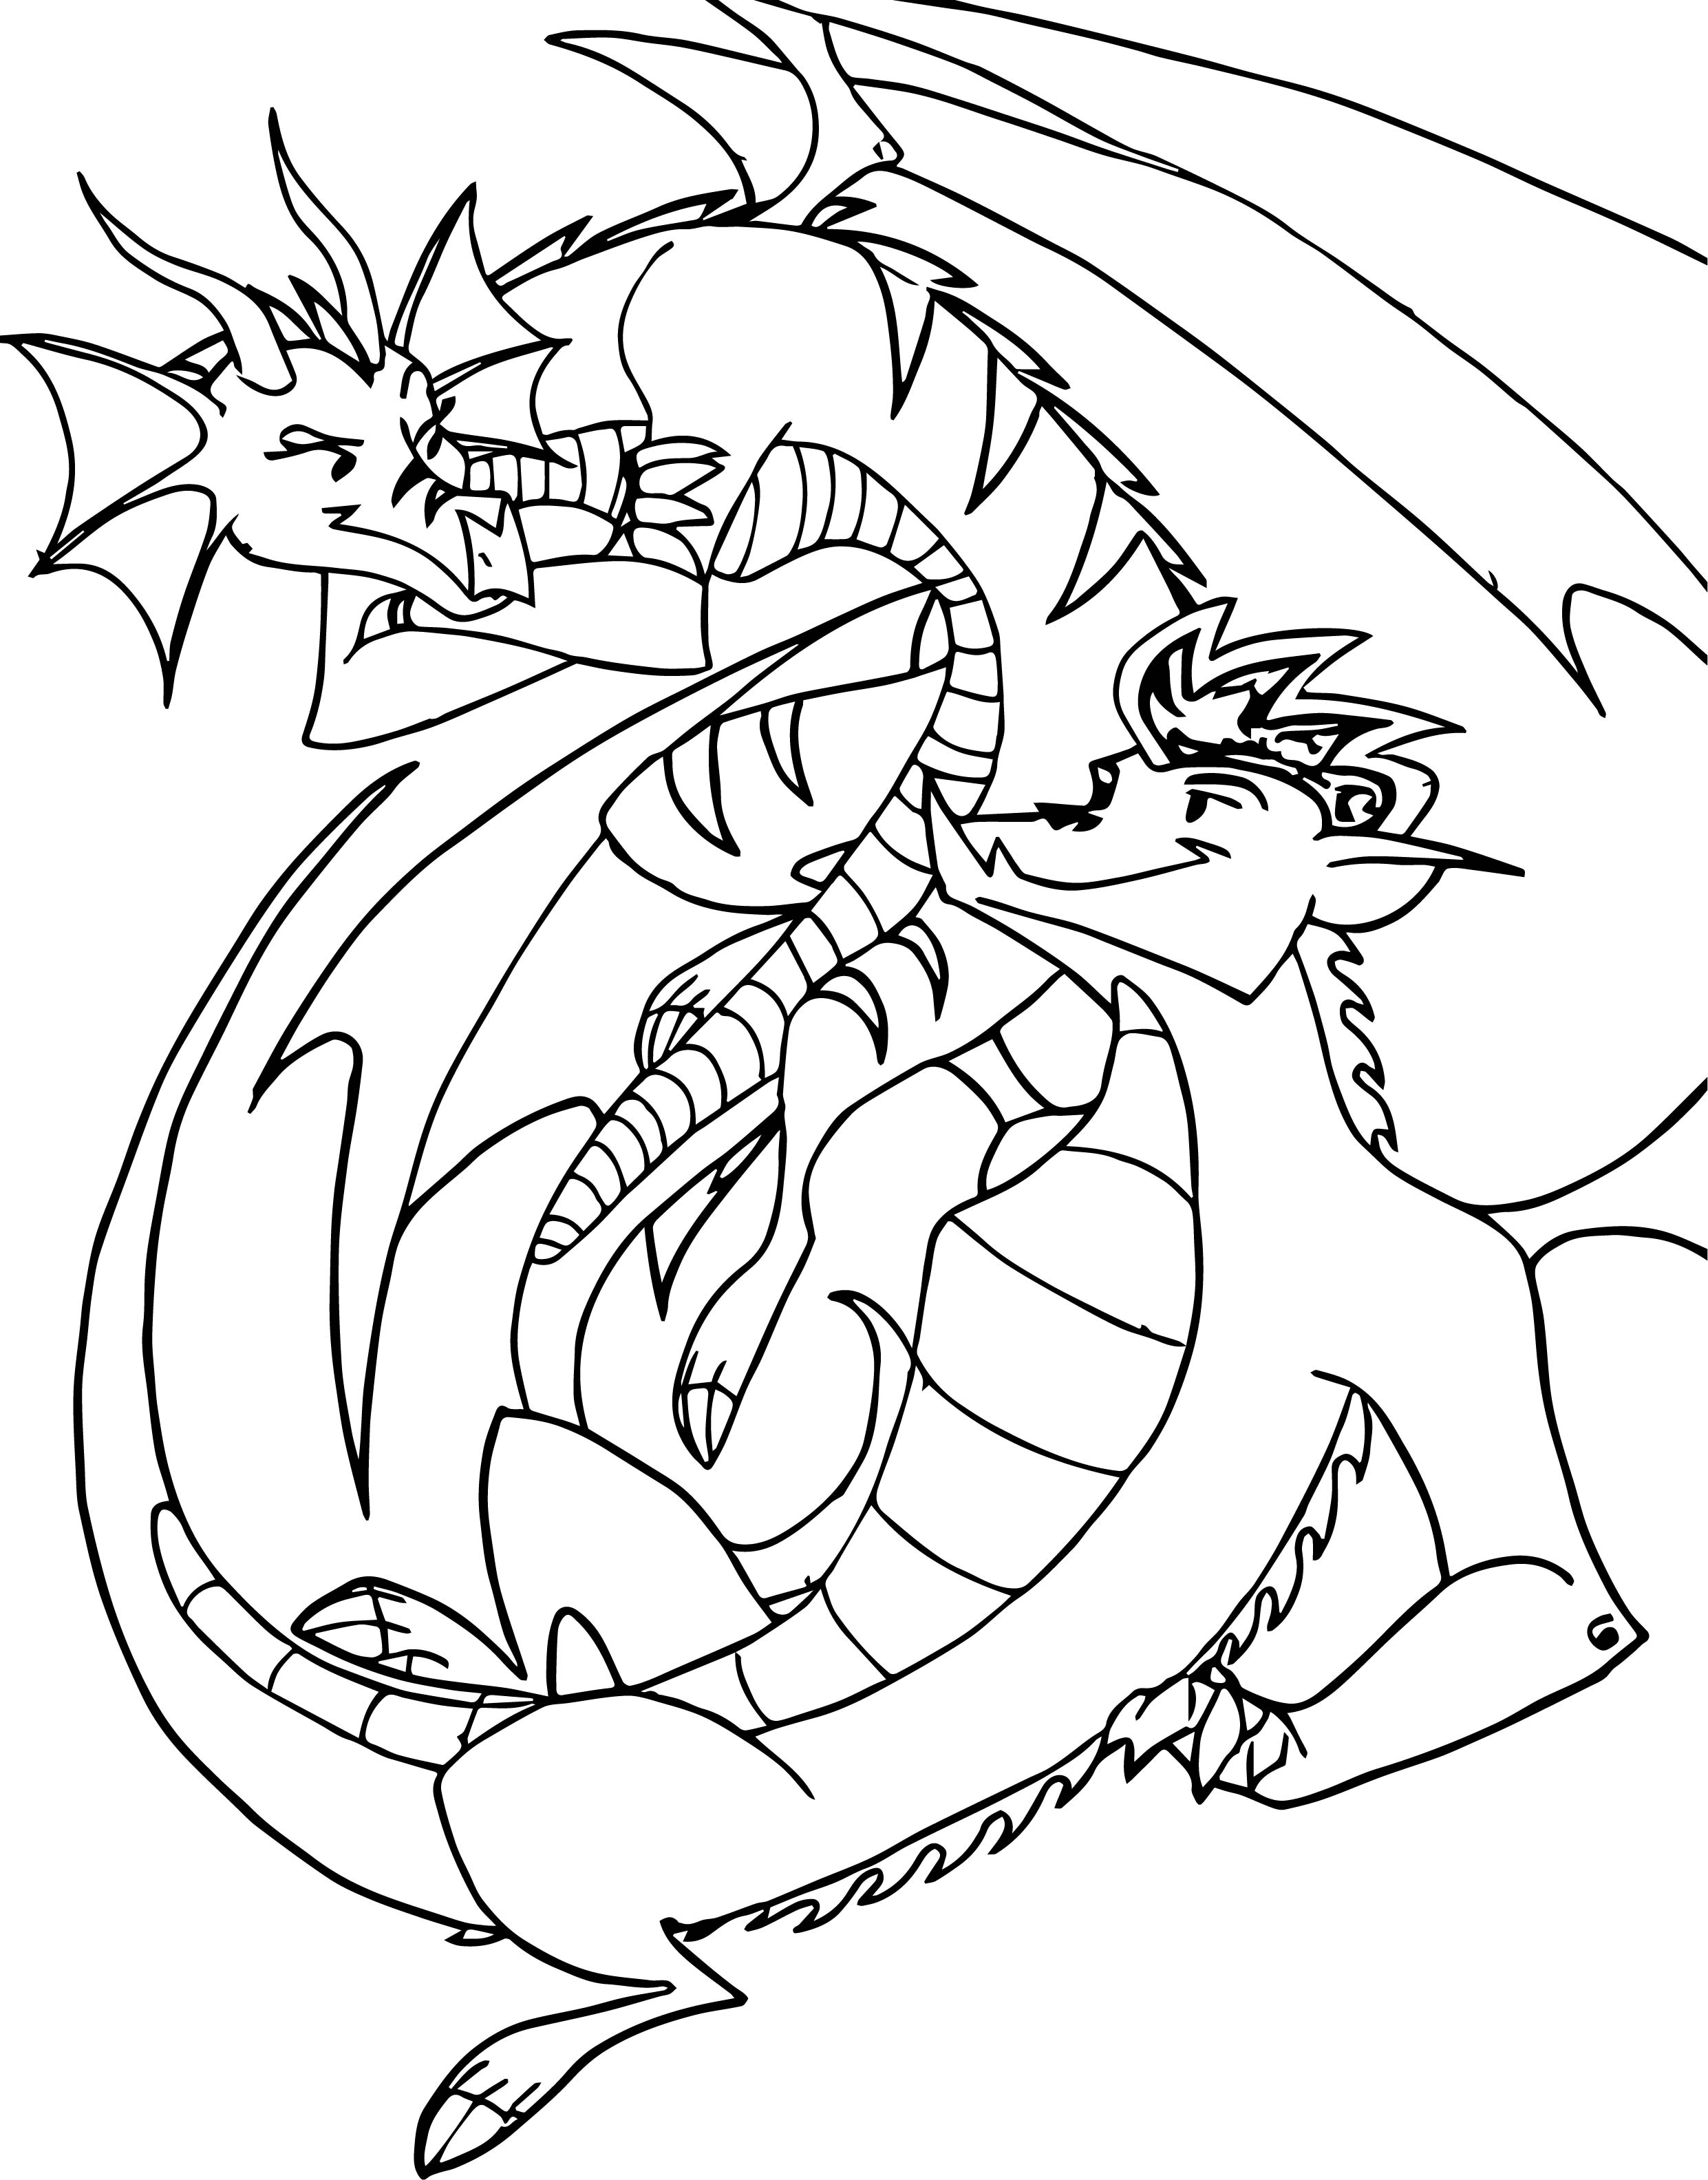 americon dragon coloring pages - photo#42